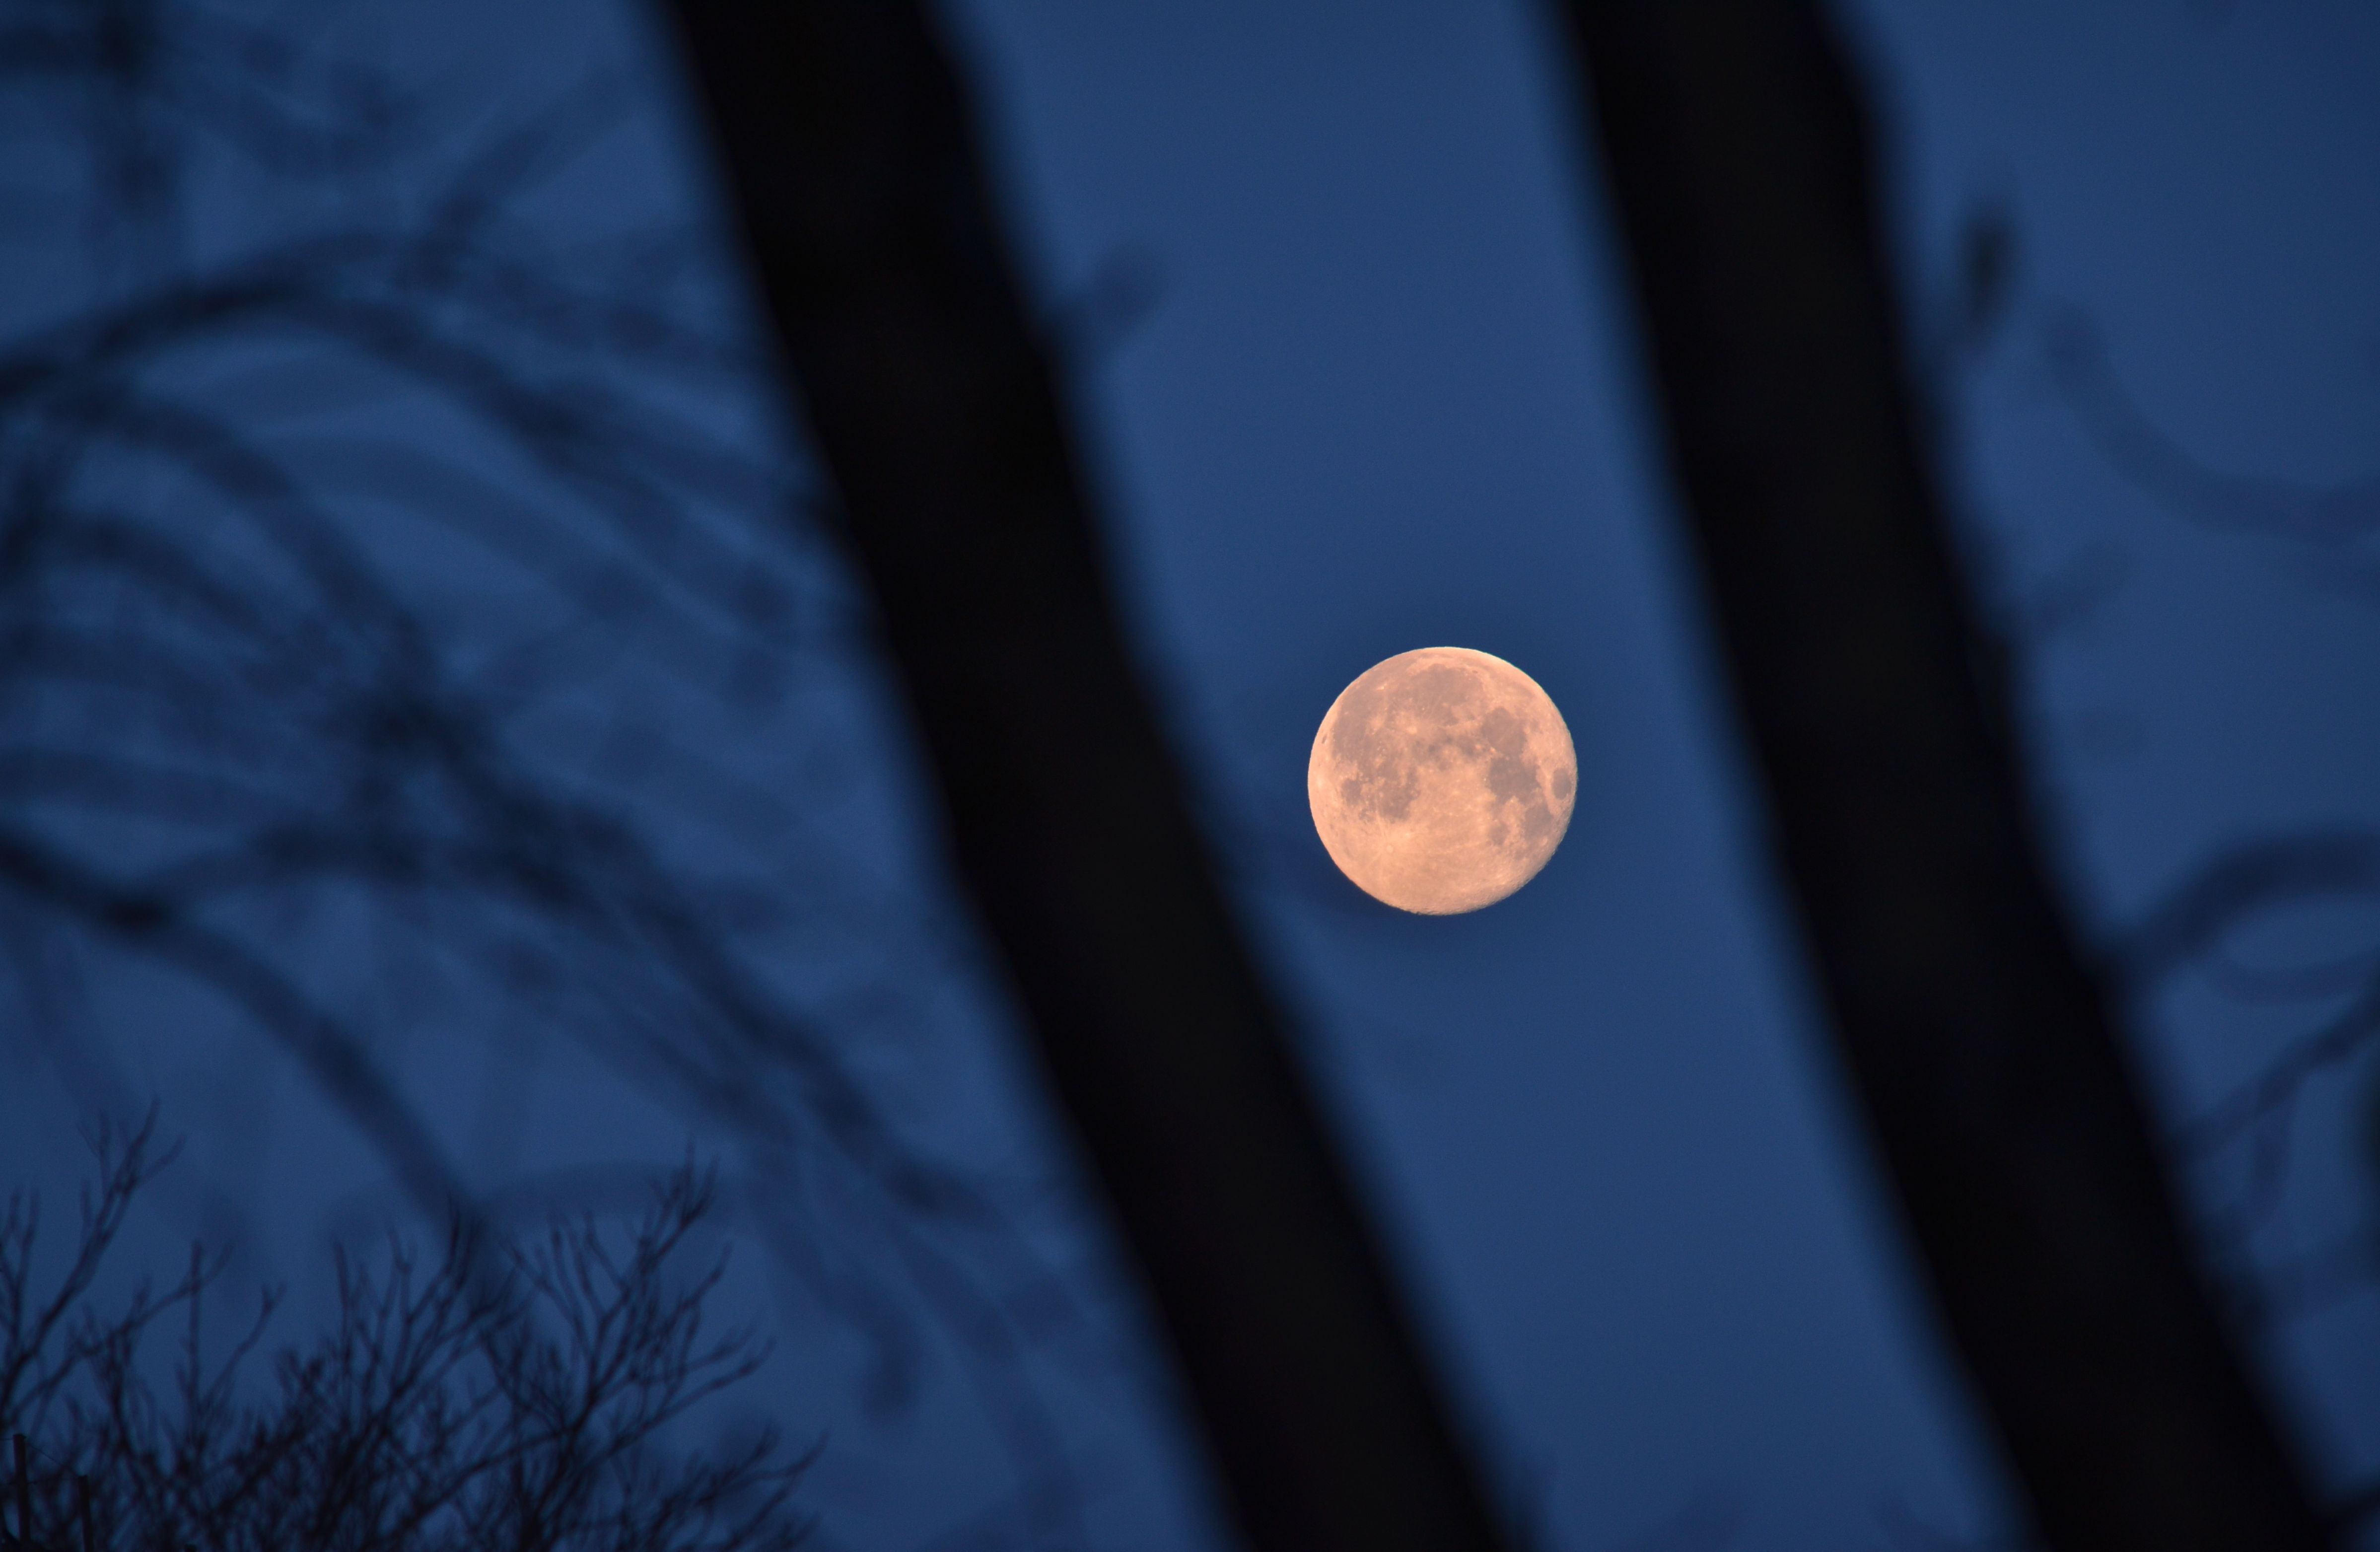 Super Worm Moon: When to see the spectacular March 2019 full